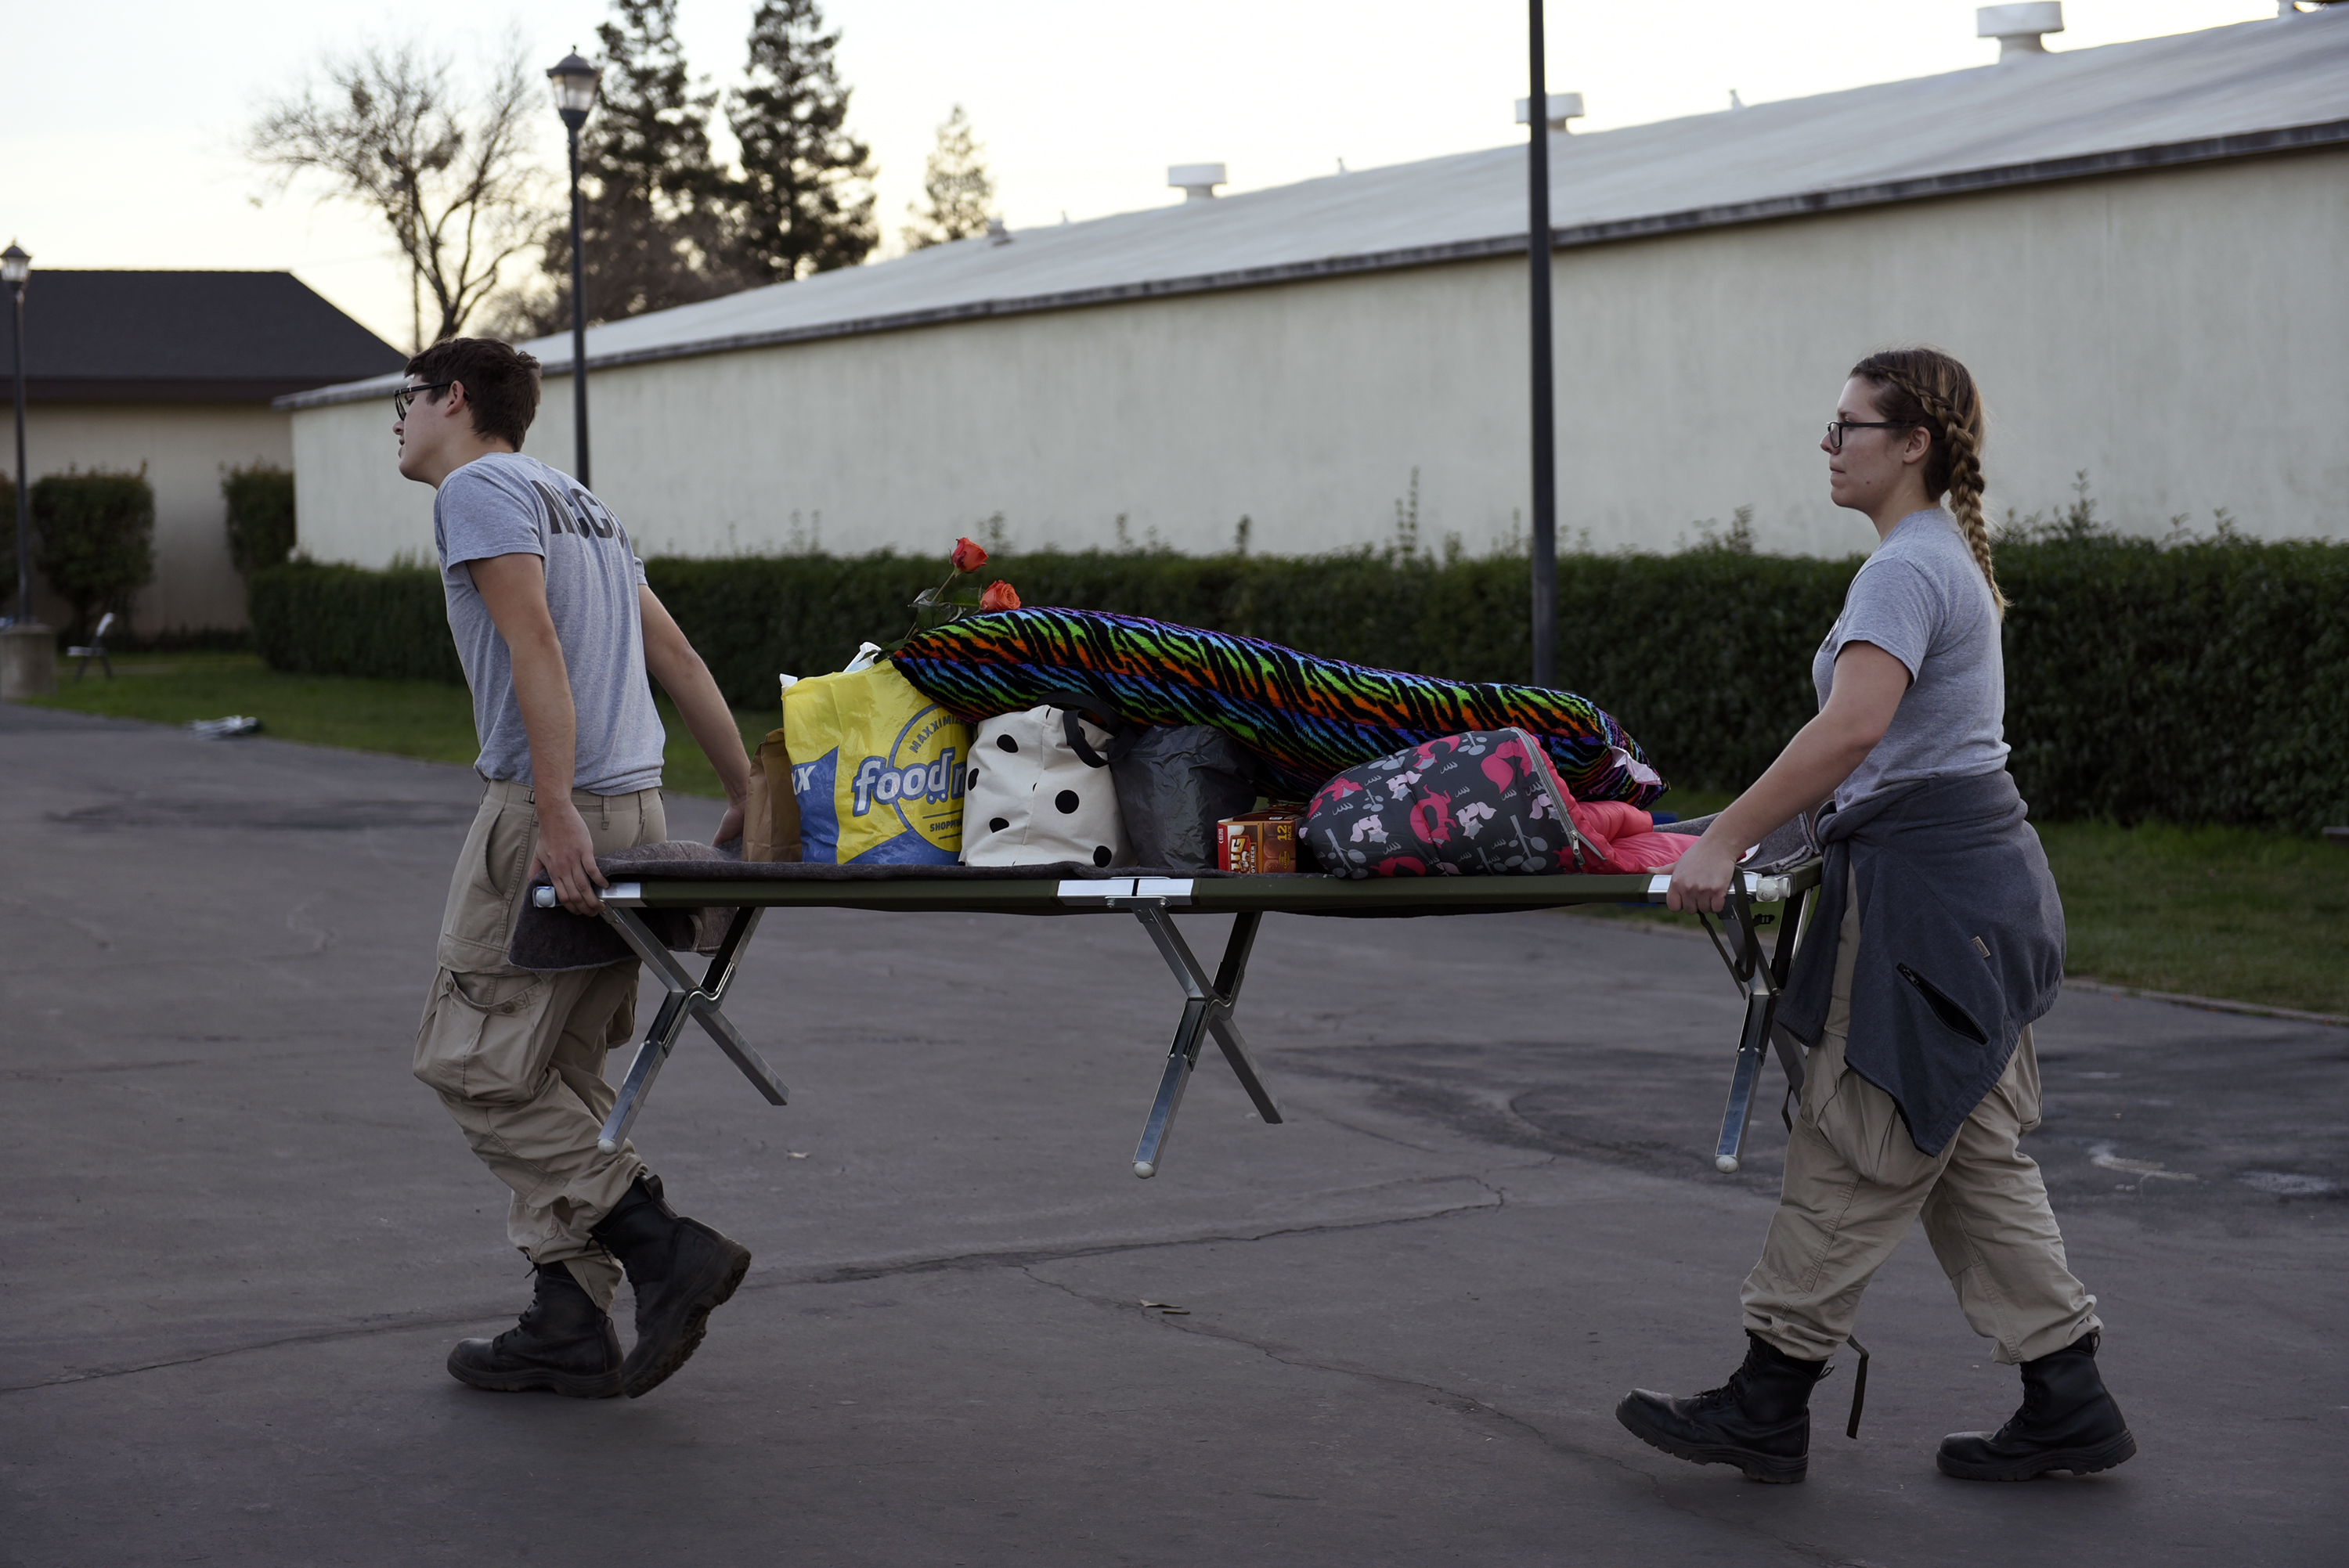 AmeriCorps volunteers carry a cot with donated items at the Silver Dollar Fairgrounds evacuation center in Chico, California, U.S., on Tuesday, Feb. 14, 2017. State officials rushed to repair an emergency spillway for the Oroville dam -- just 150 miles (241 kilometers) north of San Francisco -- that is threatening to submerge an entire region of northern California after a recent deluge of rain.